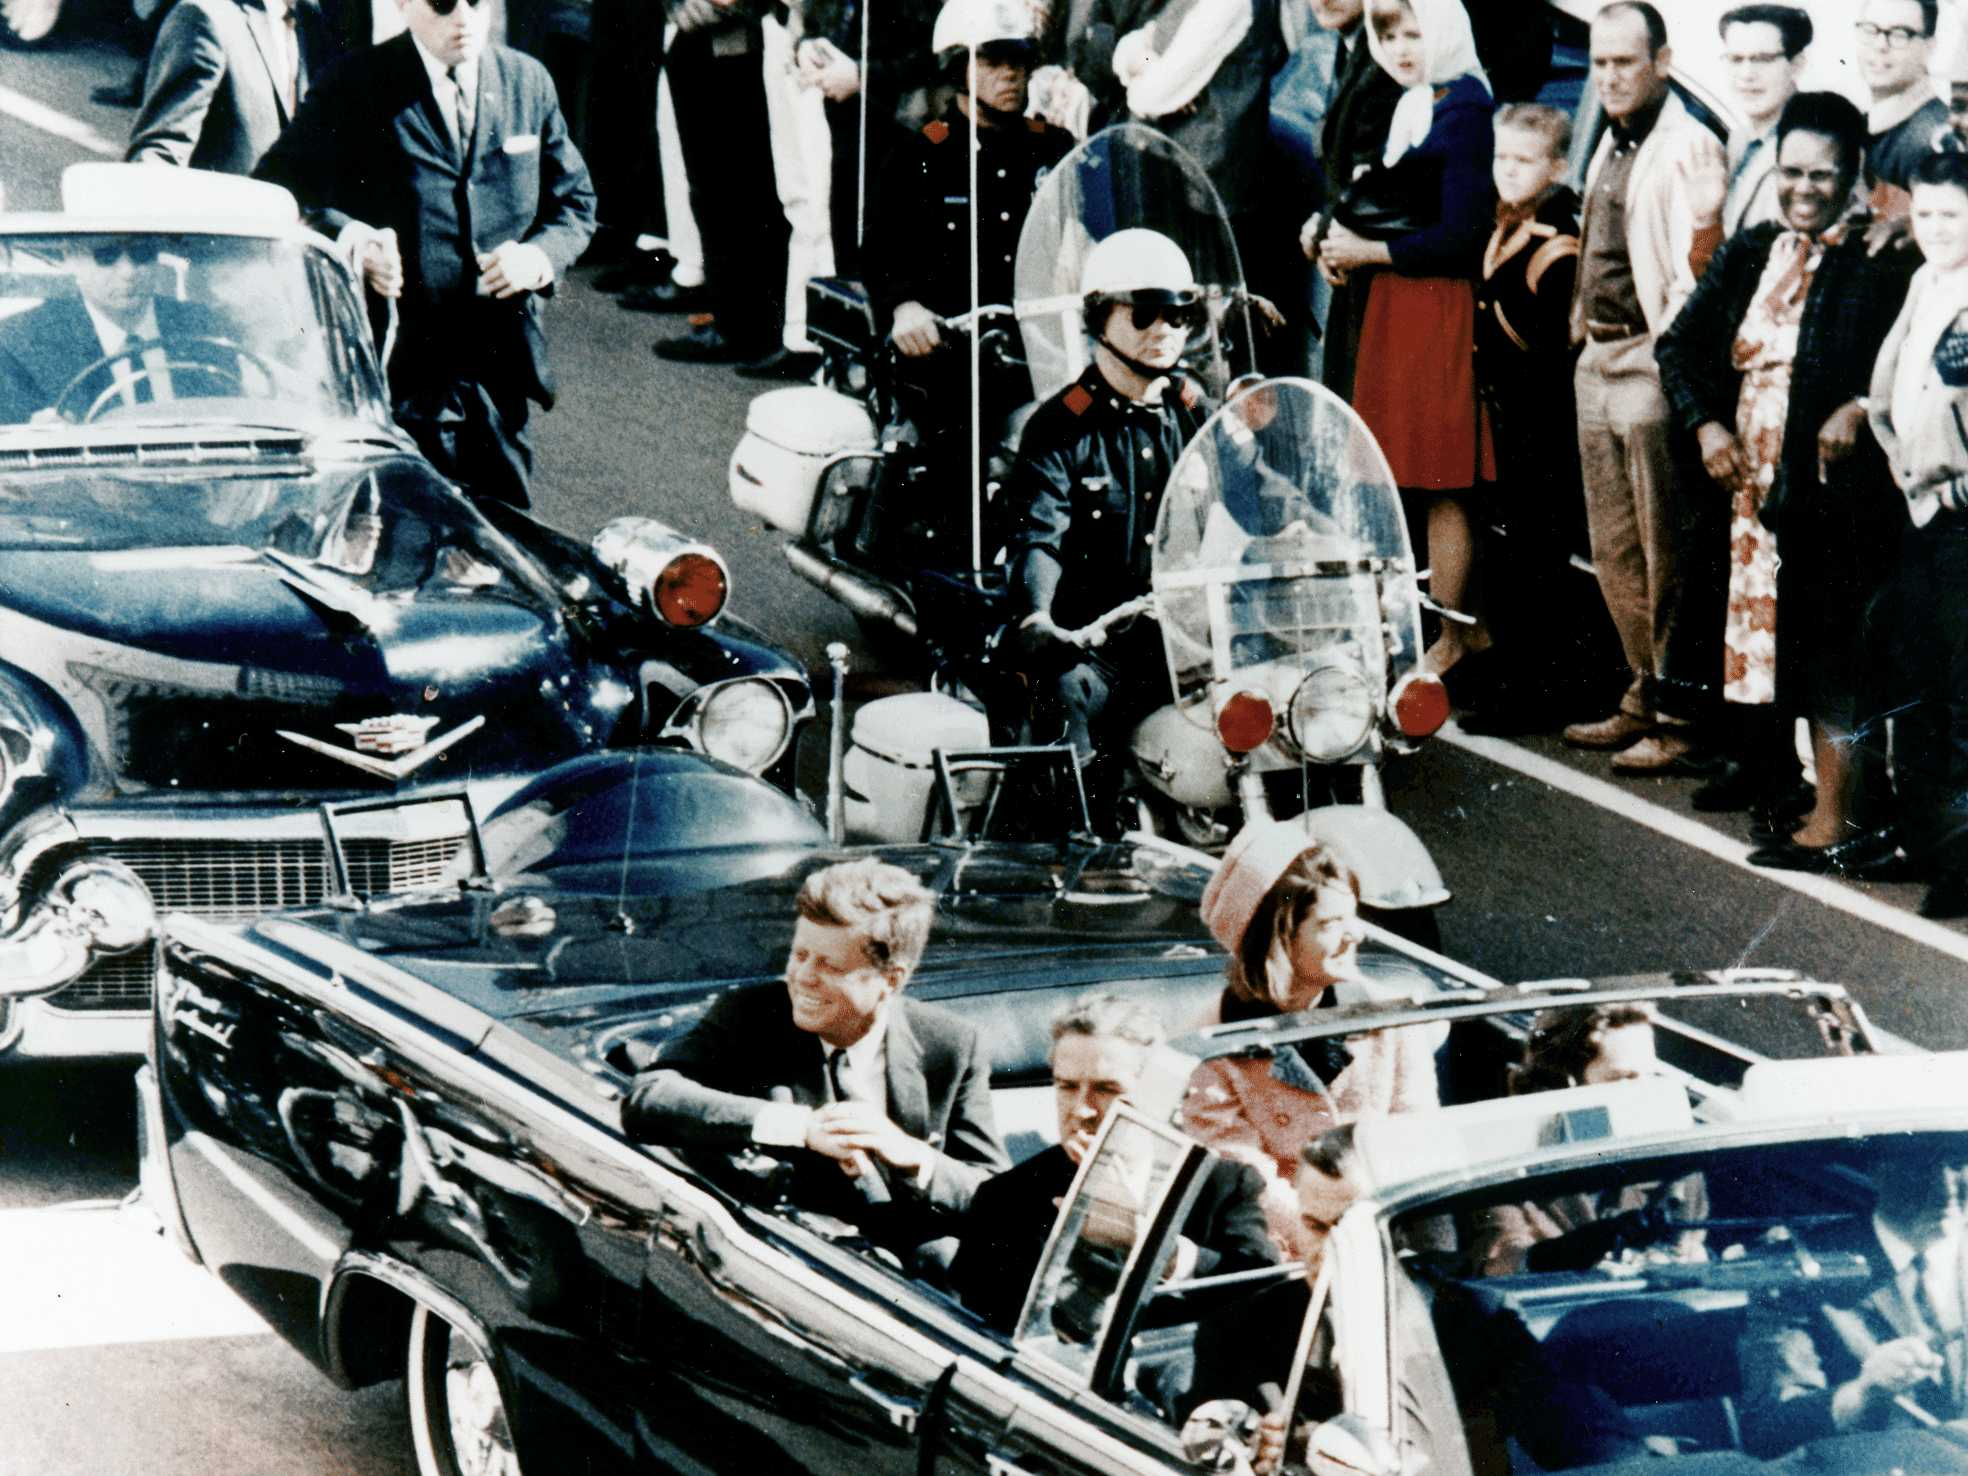 critical-moments-from-the-day-of-kennedys-assassination-timeline